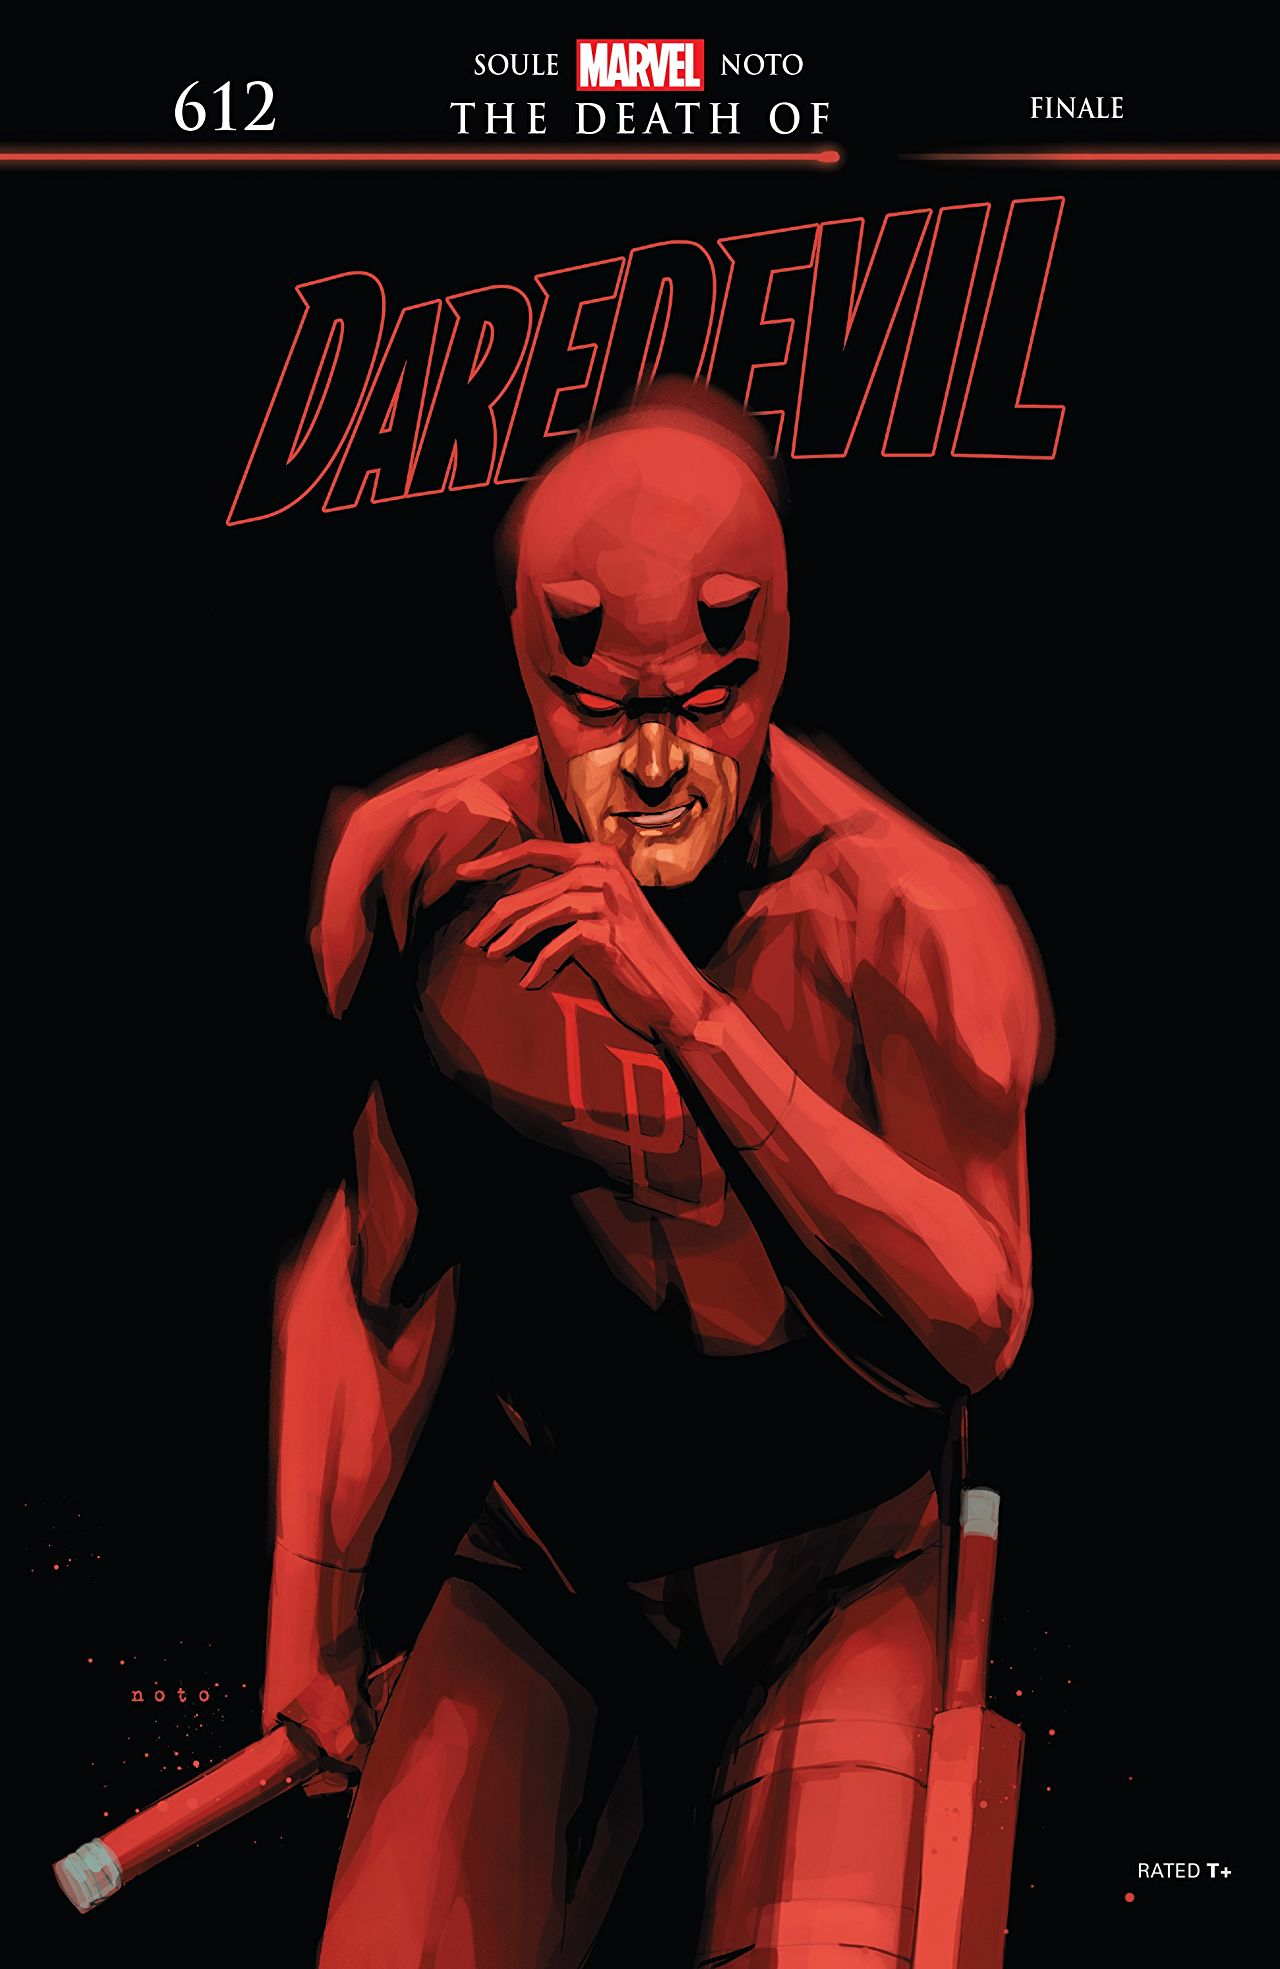 Daredevil Vol 1 612